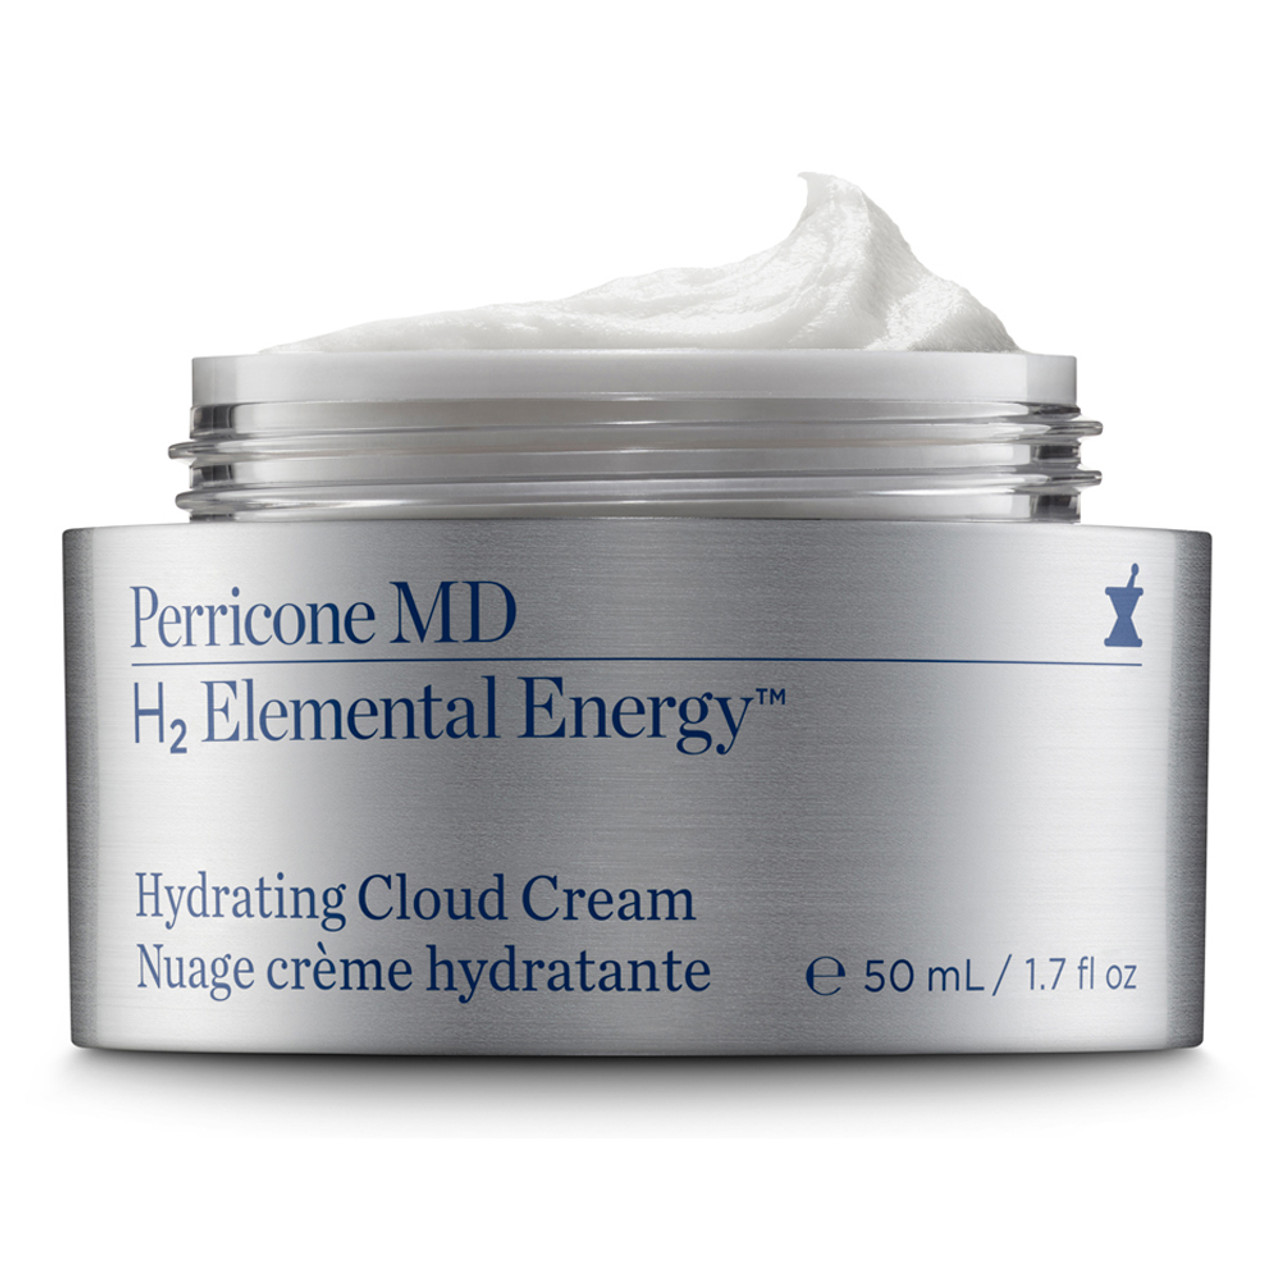 Perricone MD H2 Elemental Energy Hydrating Cloud Cream (discontinued) BeautifiedYou.com